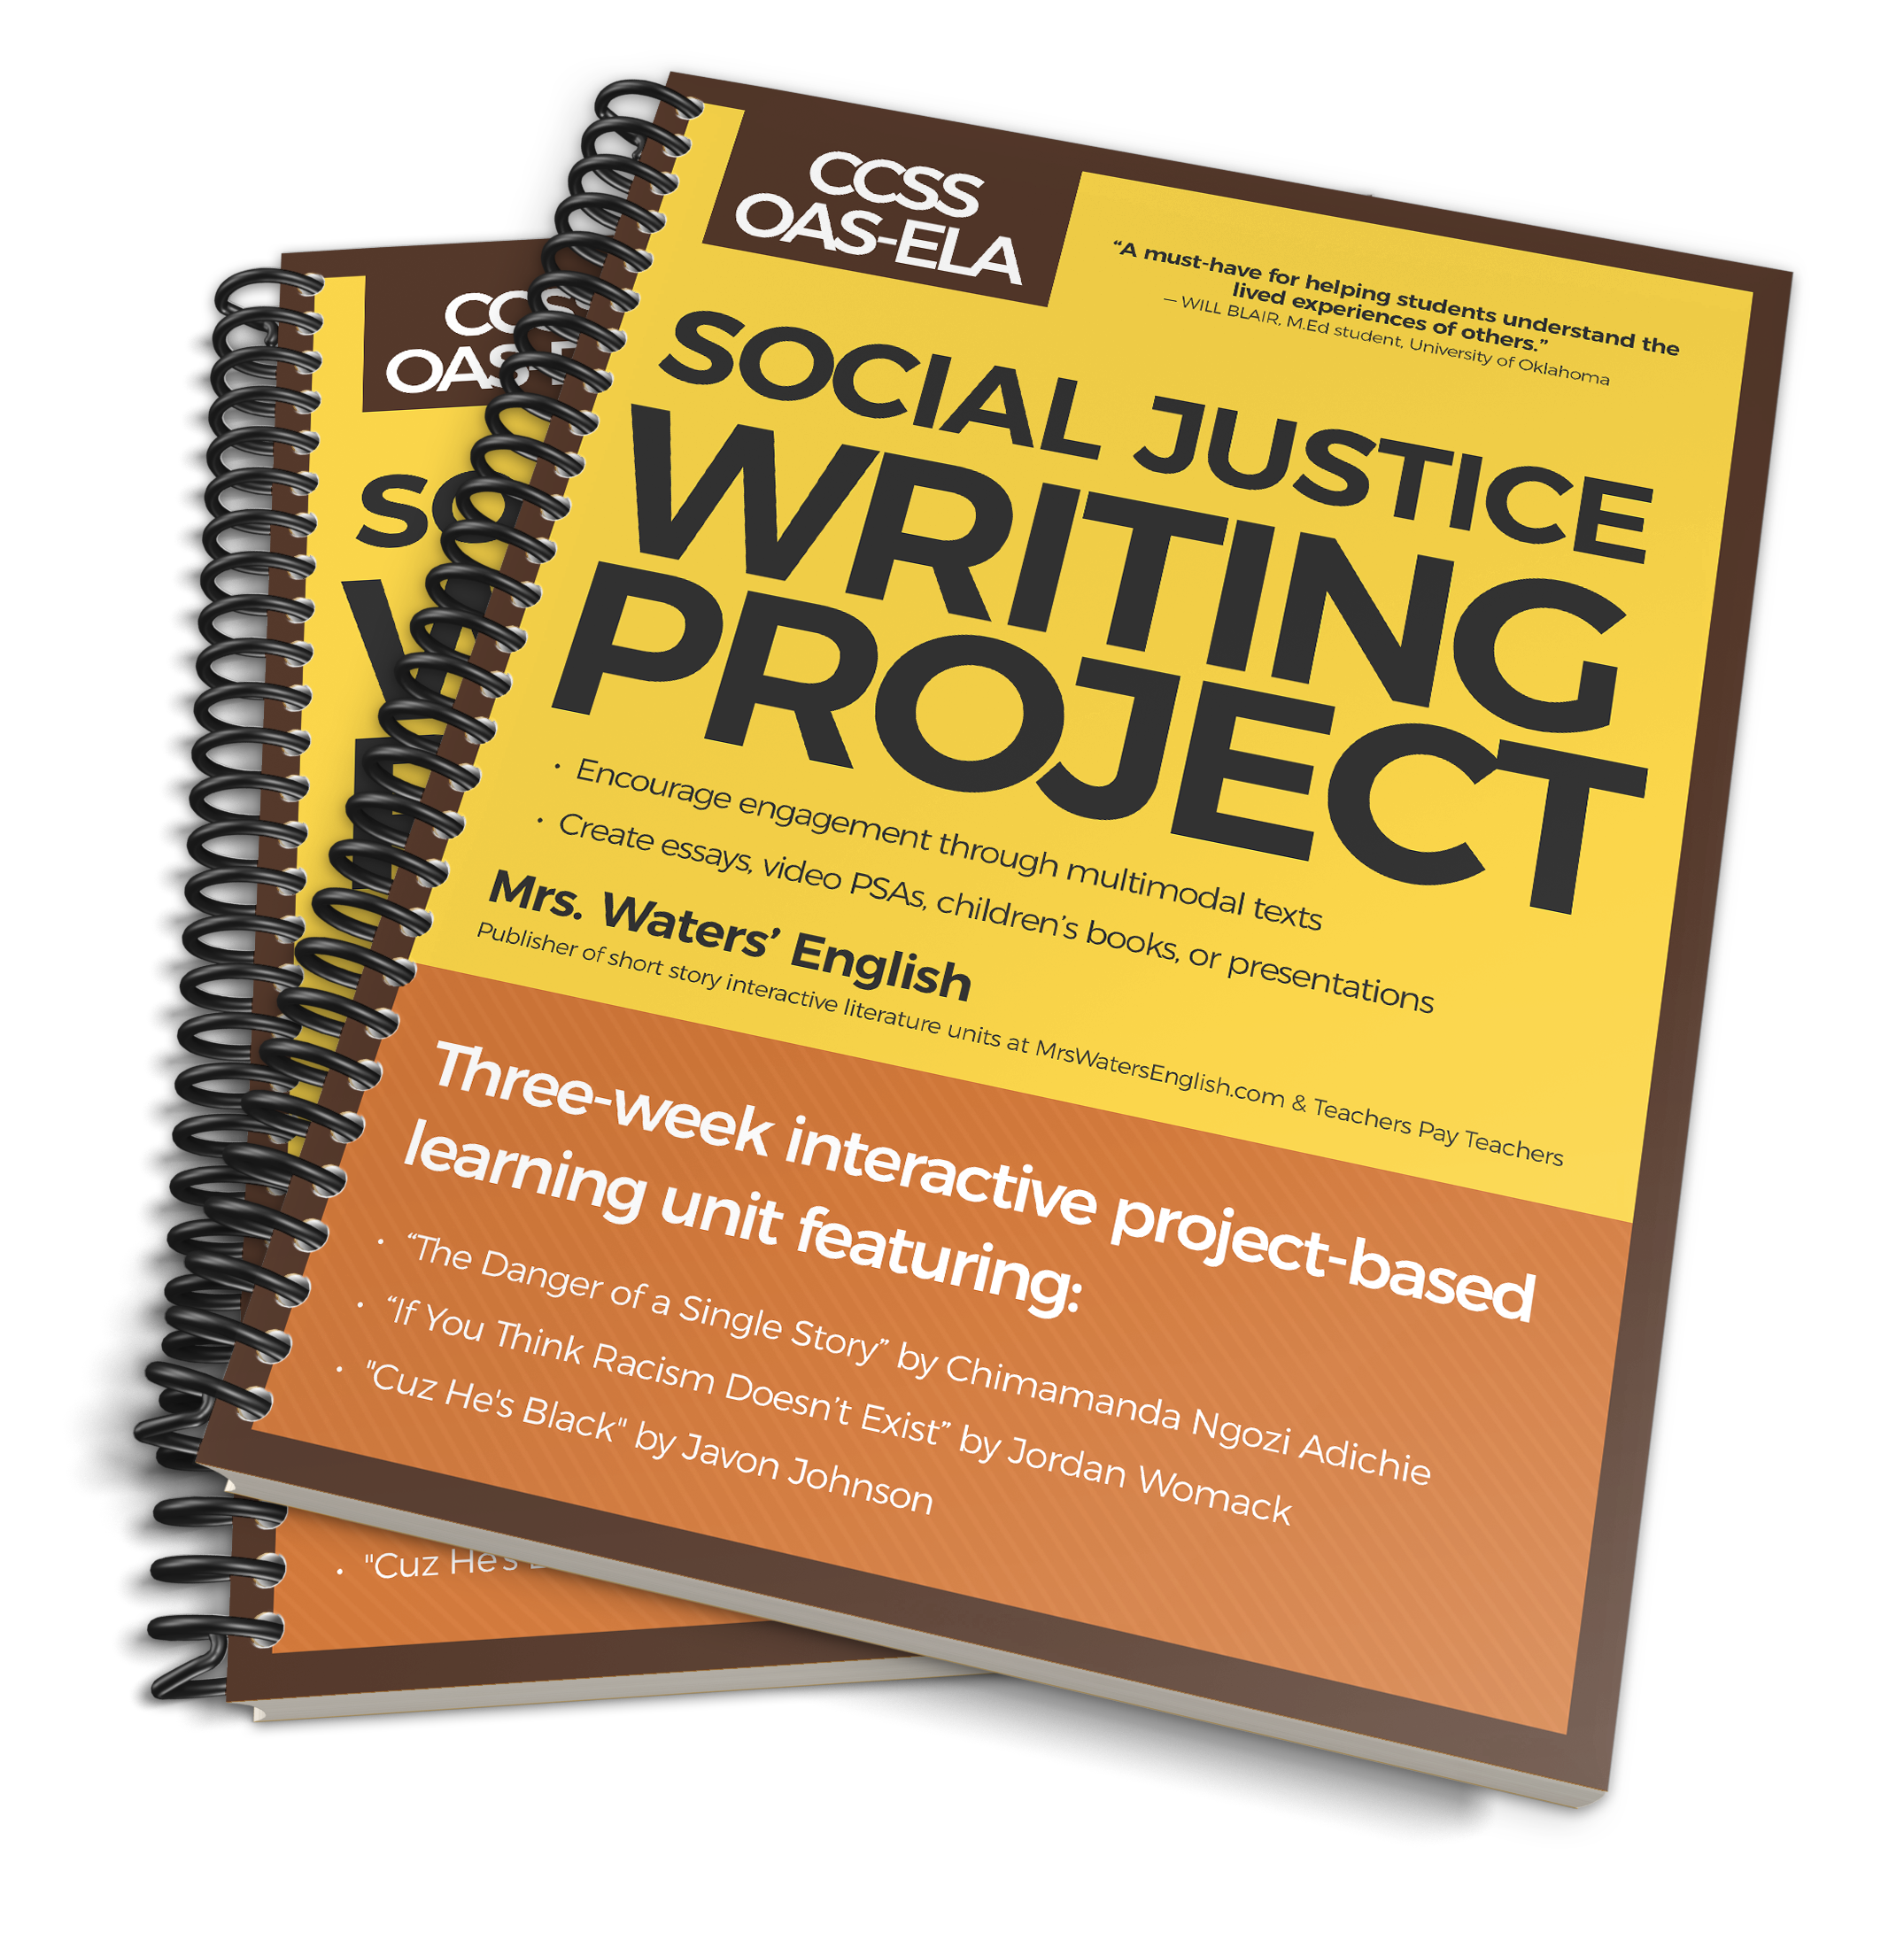 social justice writing project - Halloween Short Stories Middle School